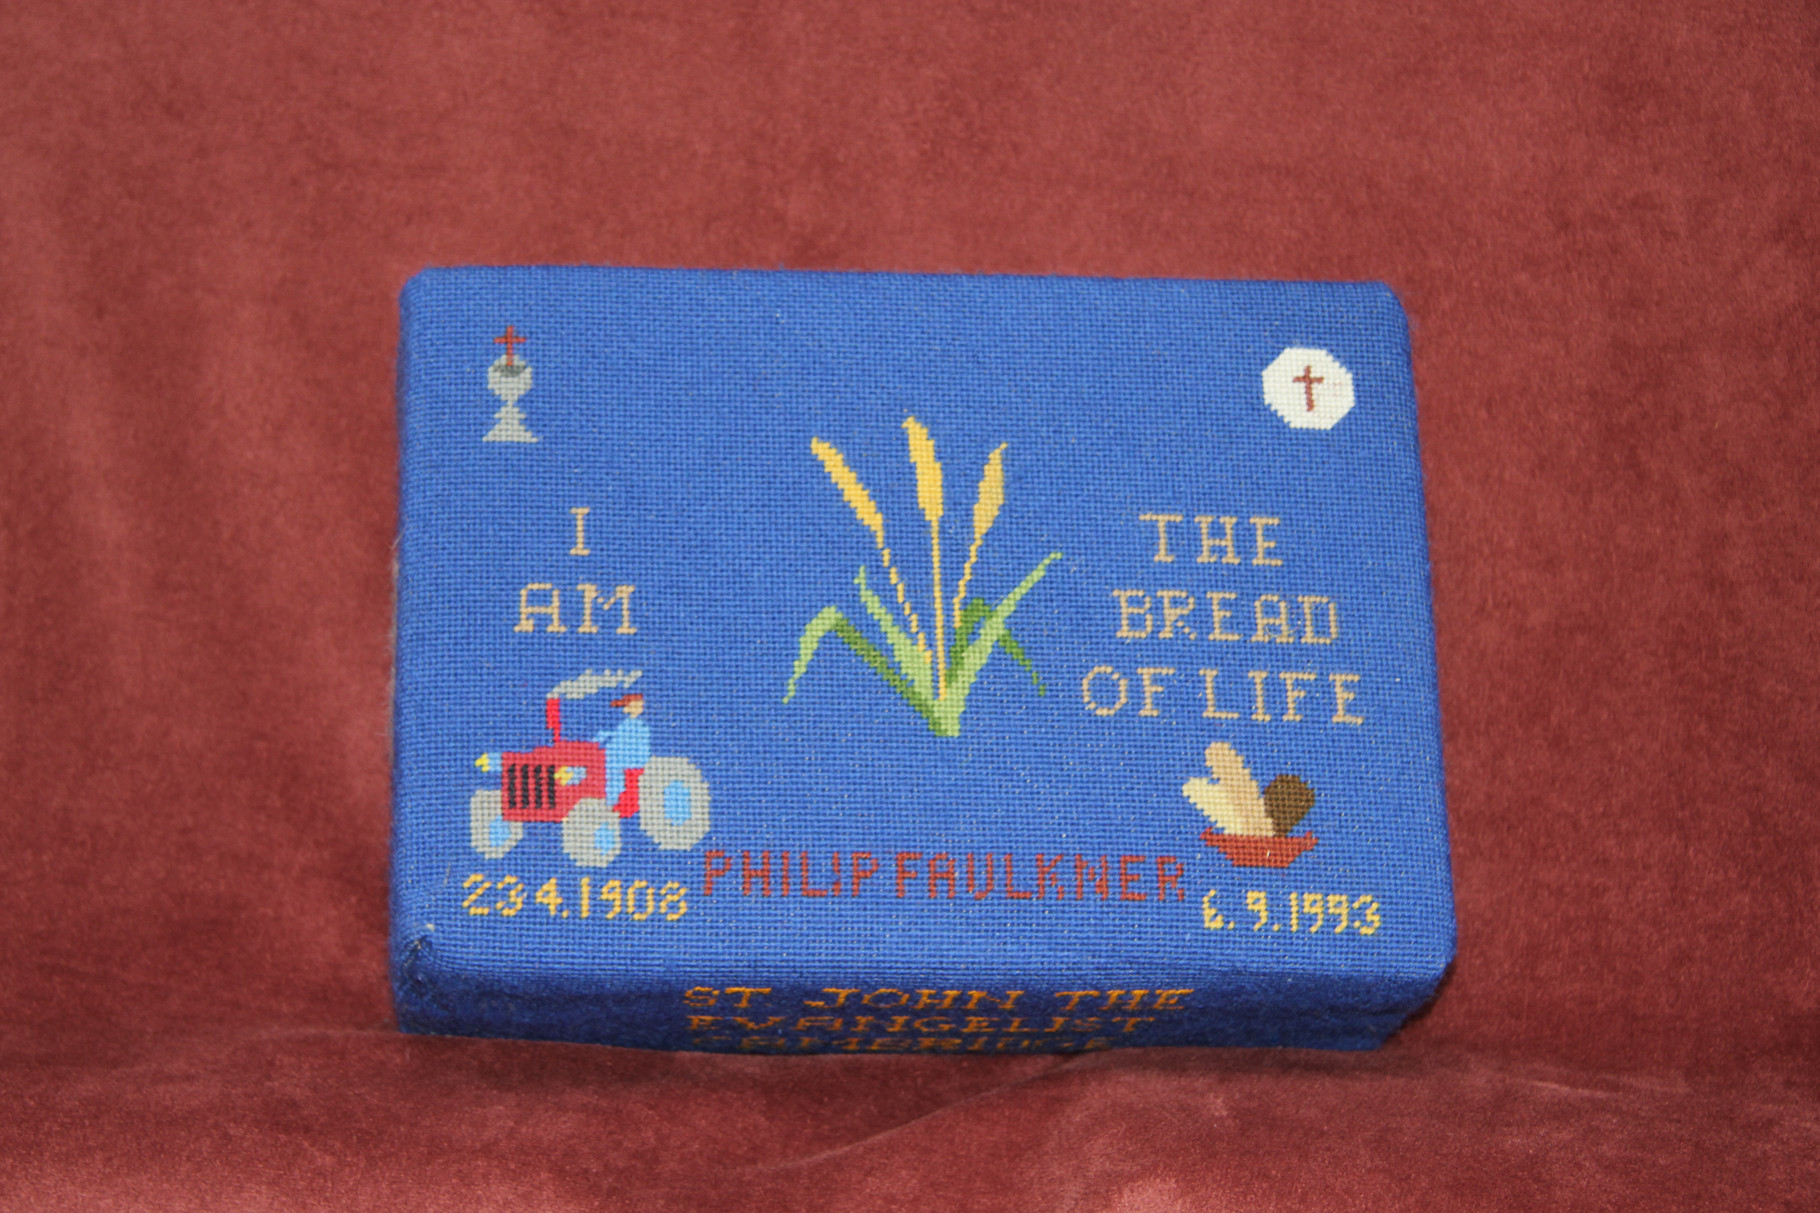 """72. """"I am the Bread of Life"""" in memory of Philip Faulkner (23.4.1908-6.9.1993) donated by Vera Faulkner and worked by Beryl Johnson"""